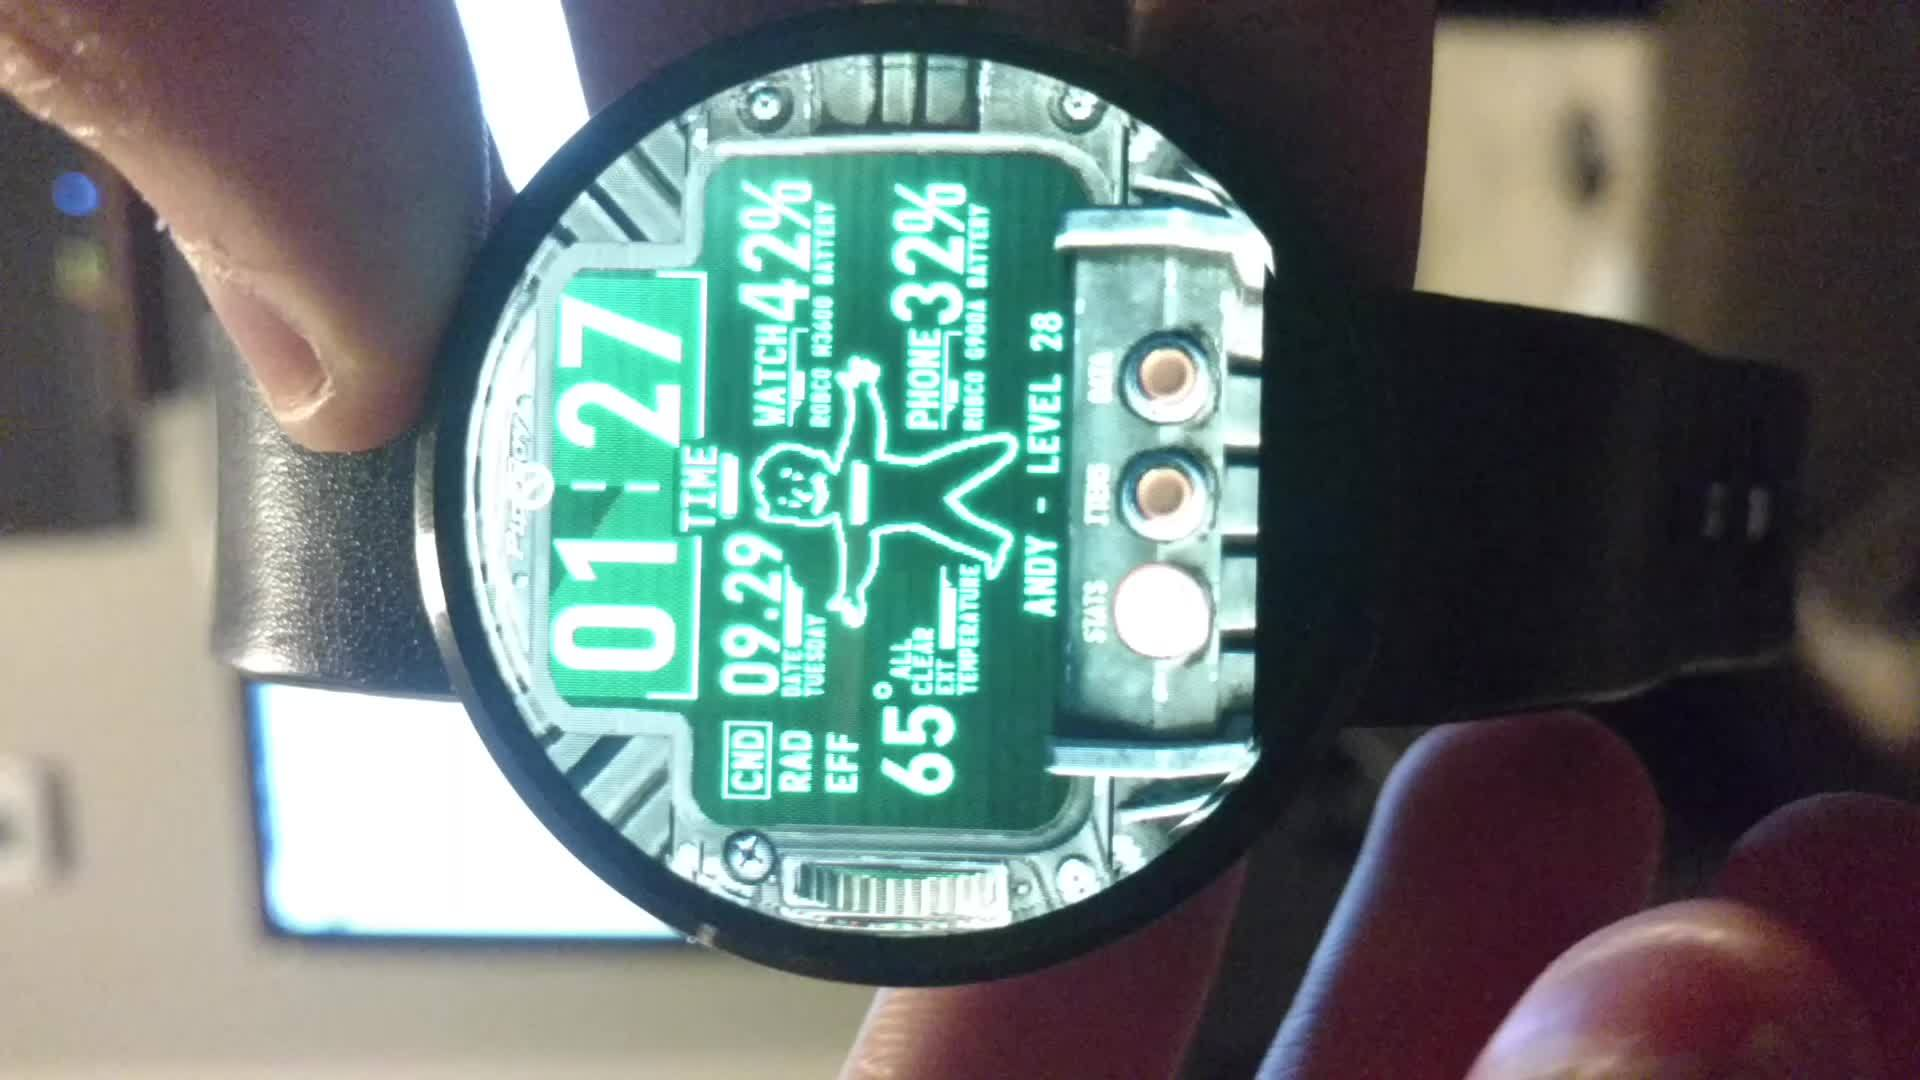 androidwear, This will forever be my favorite watchface (Link in the comments) [GIF] (reddit) GIFs